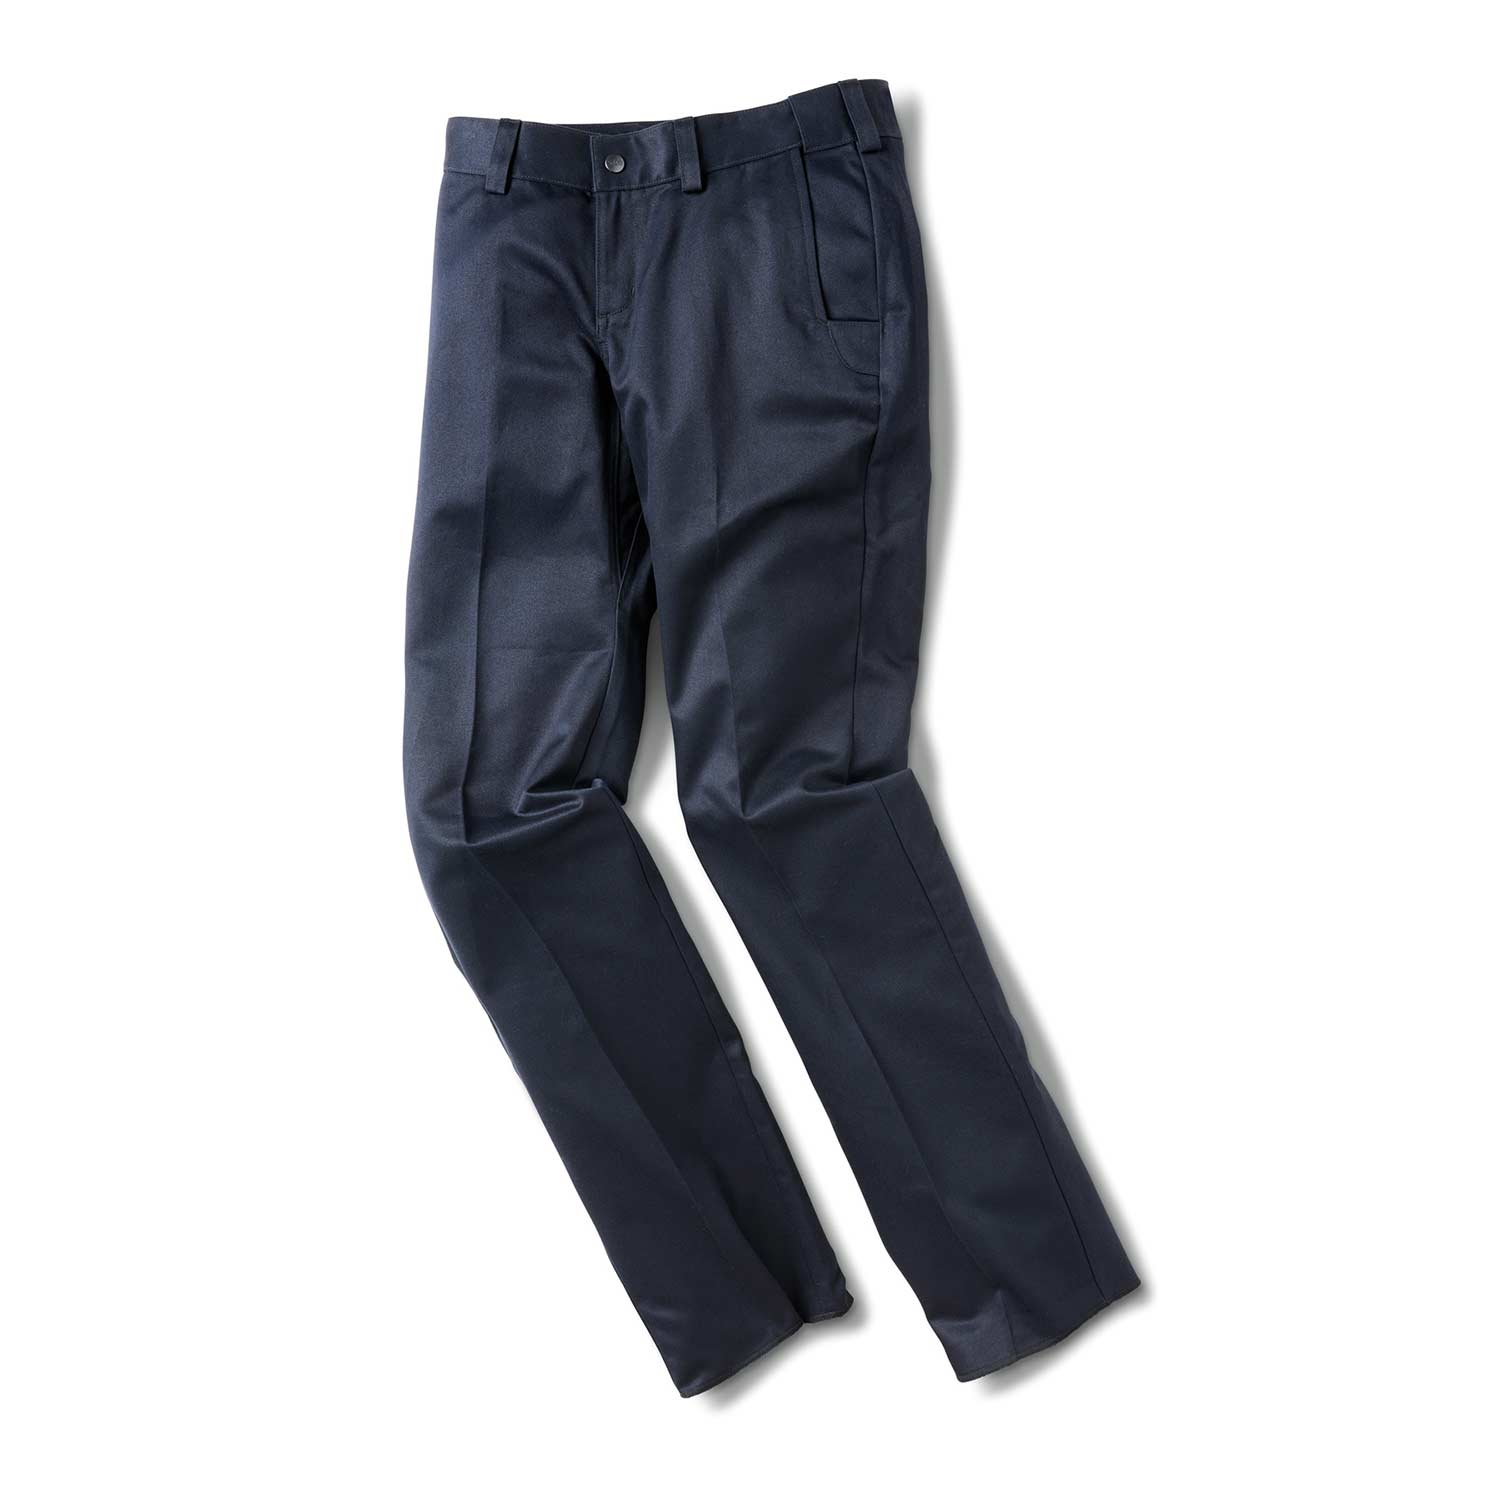 5.11 Tactical Women's Company Pant 2.0